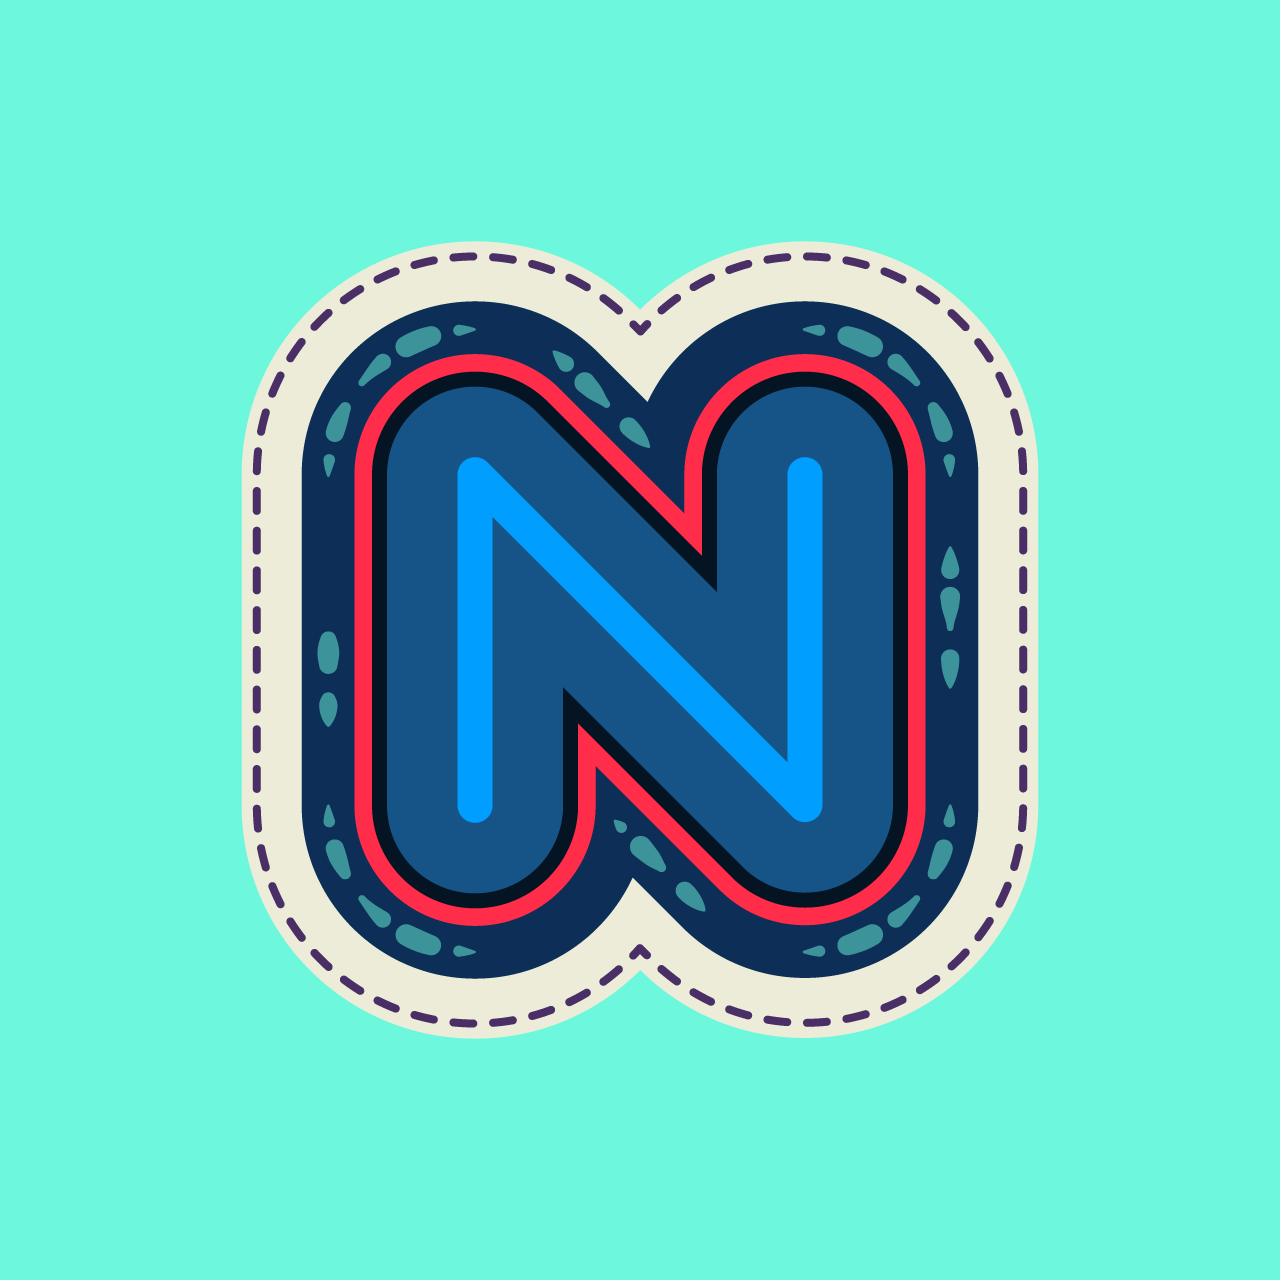 My N submission for 36 Days of Type